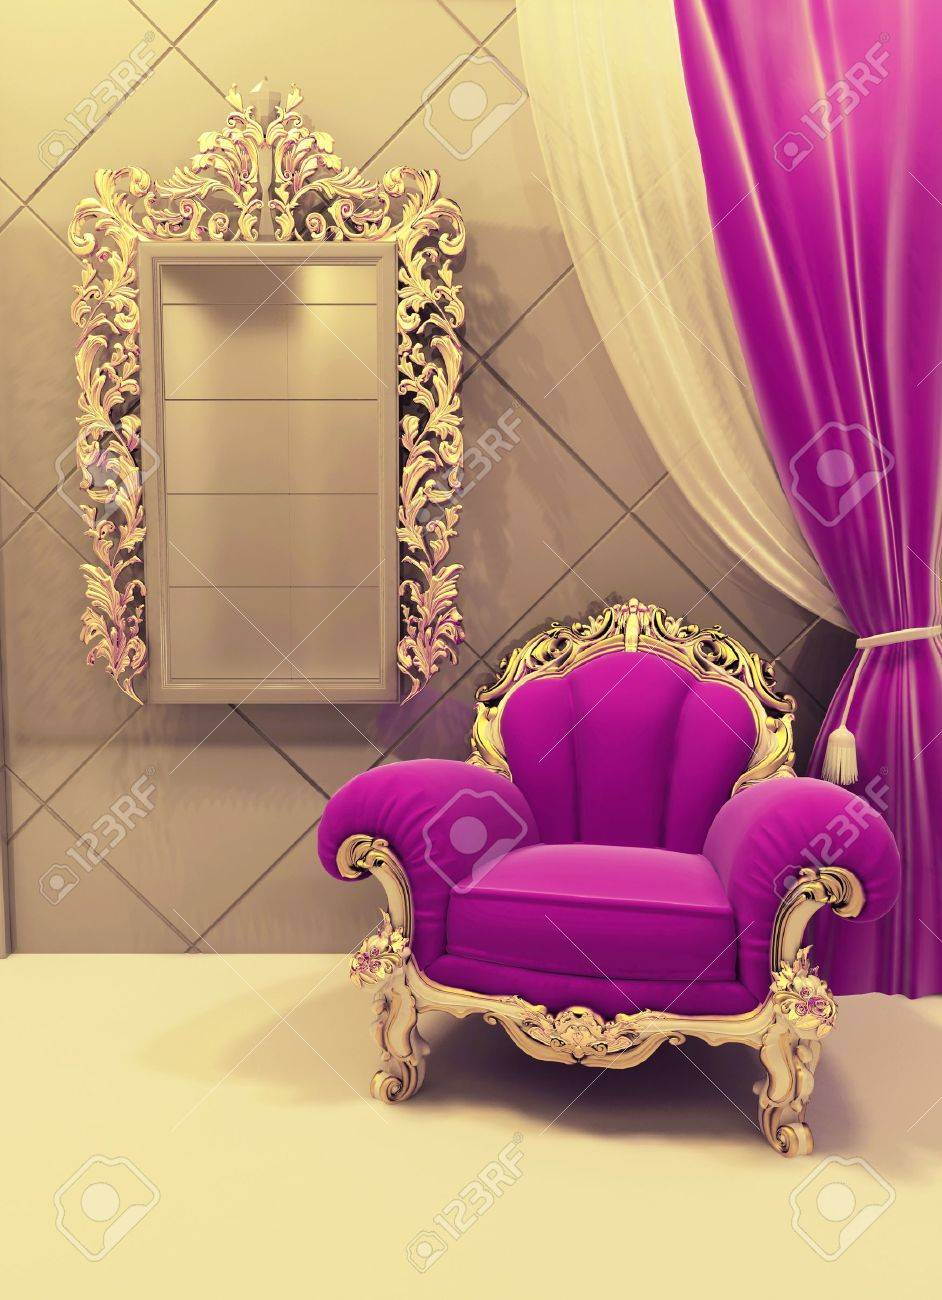 Royal  furniture in a luxurious interior Stock Photo - 10099629